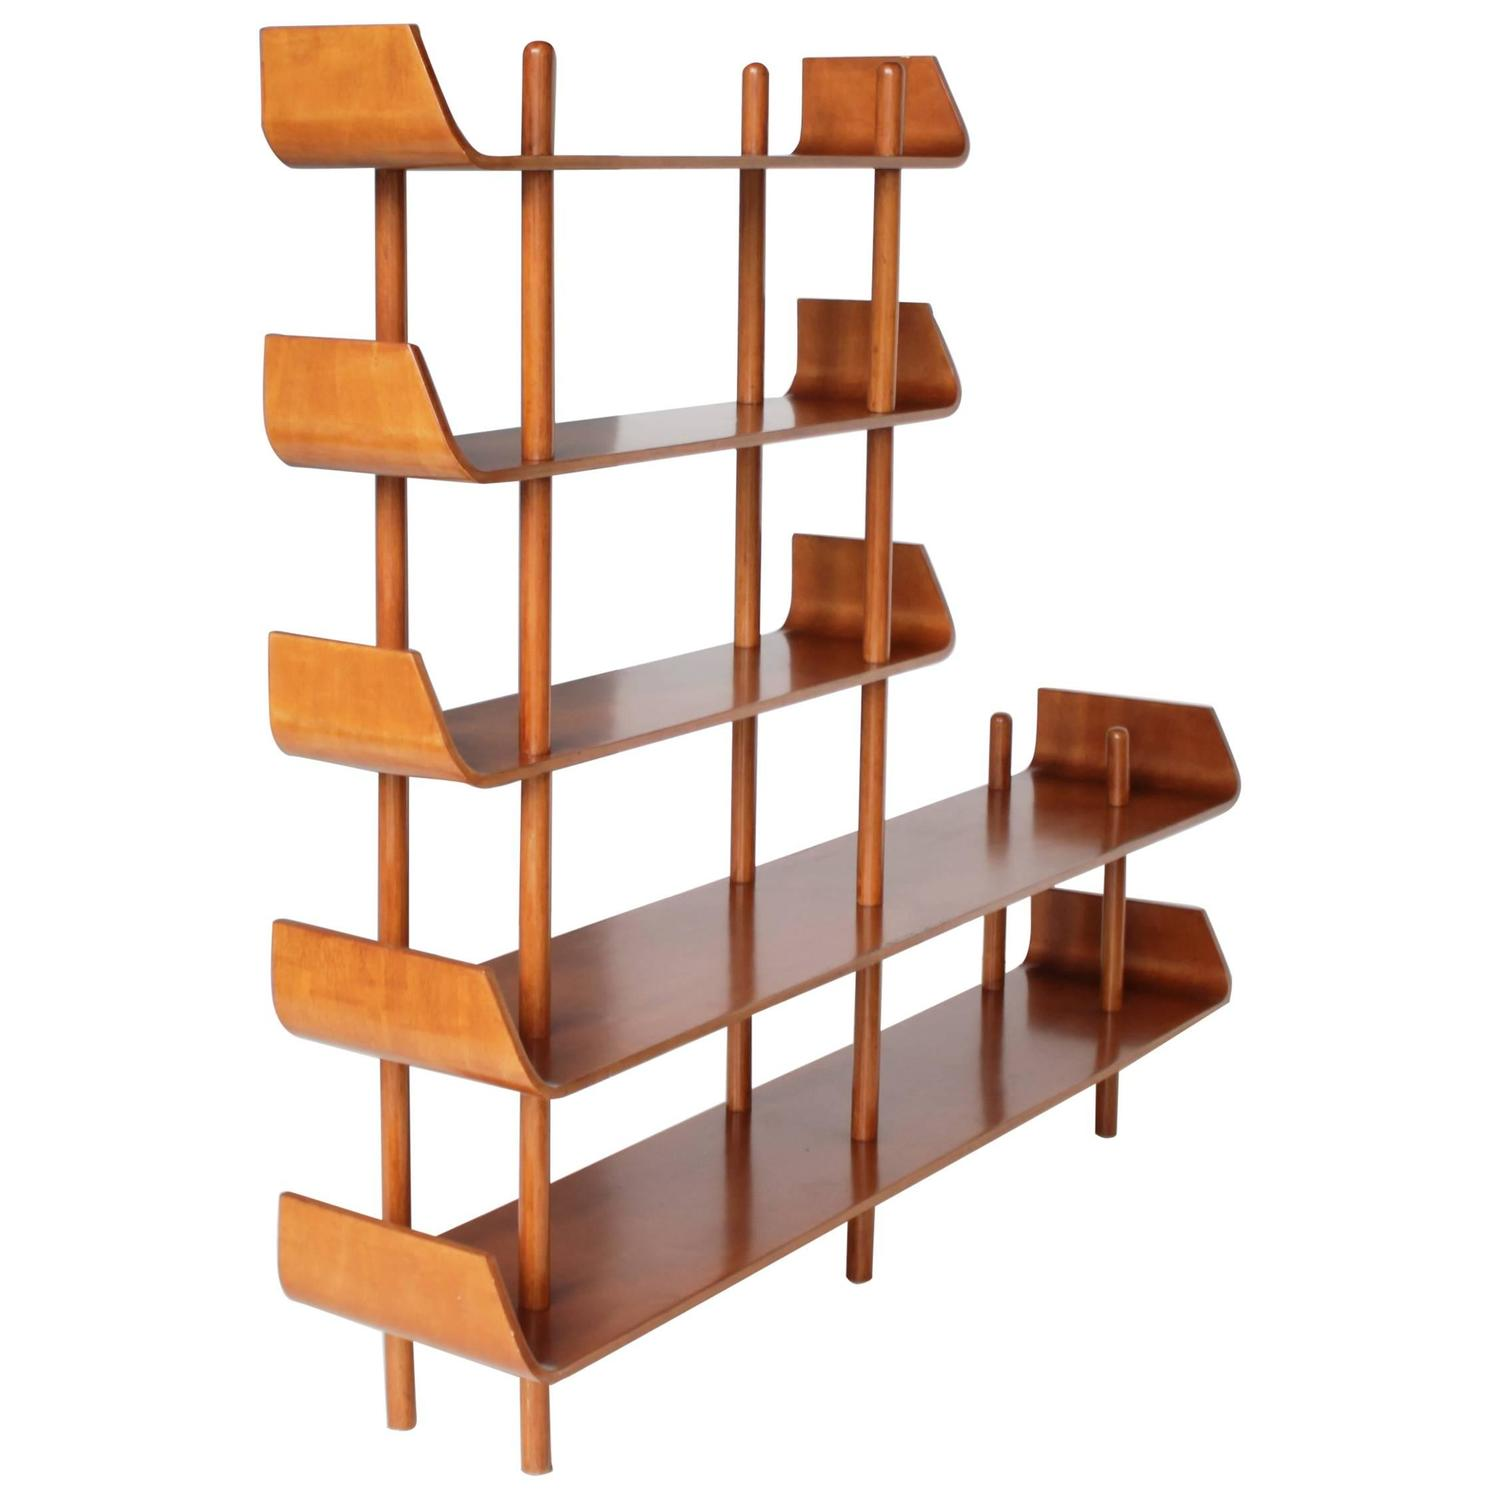 Shelving Unit Or Room Divider By Lutjens For Gouda Den Boer Holland At 1stdibs